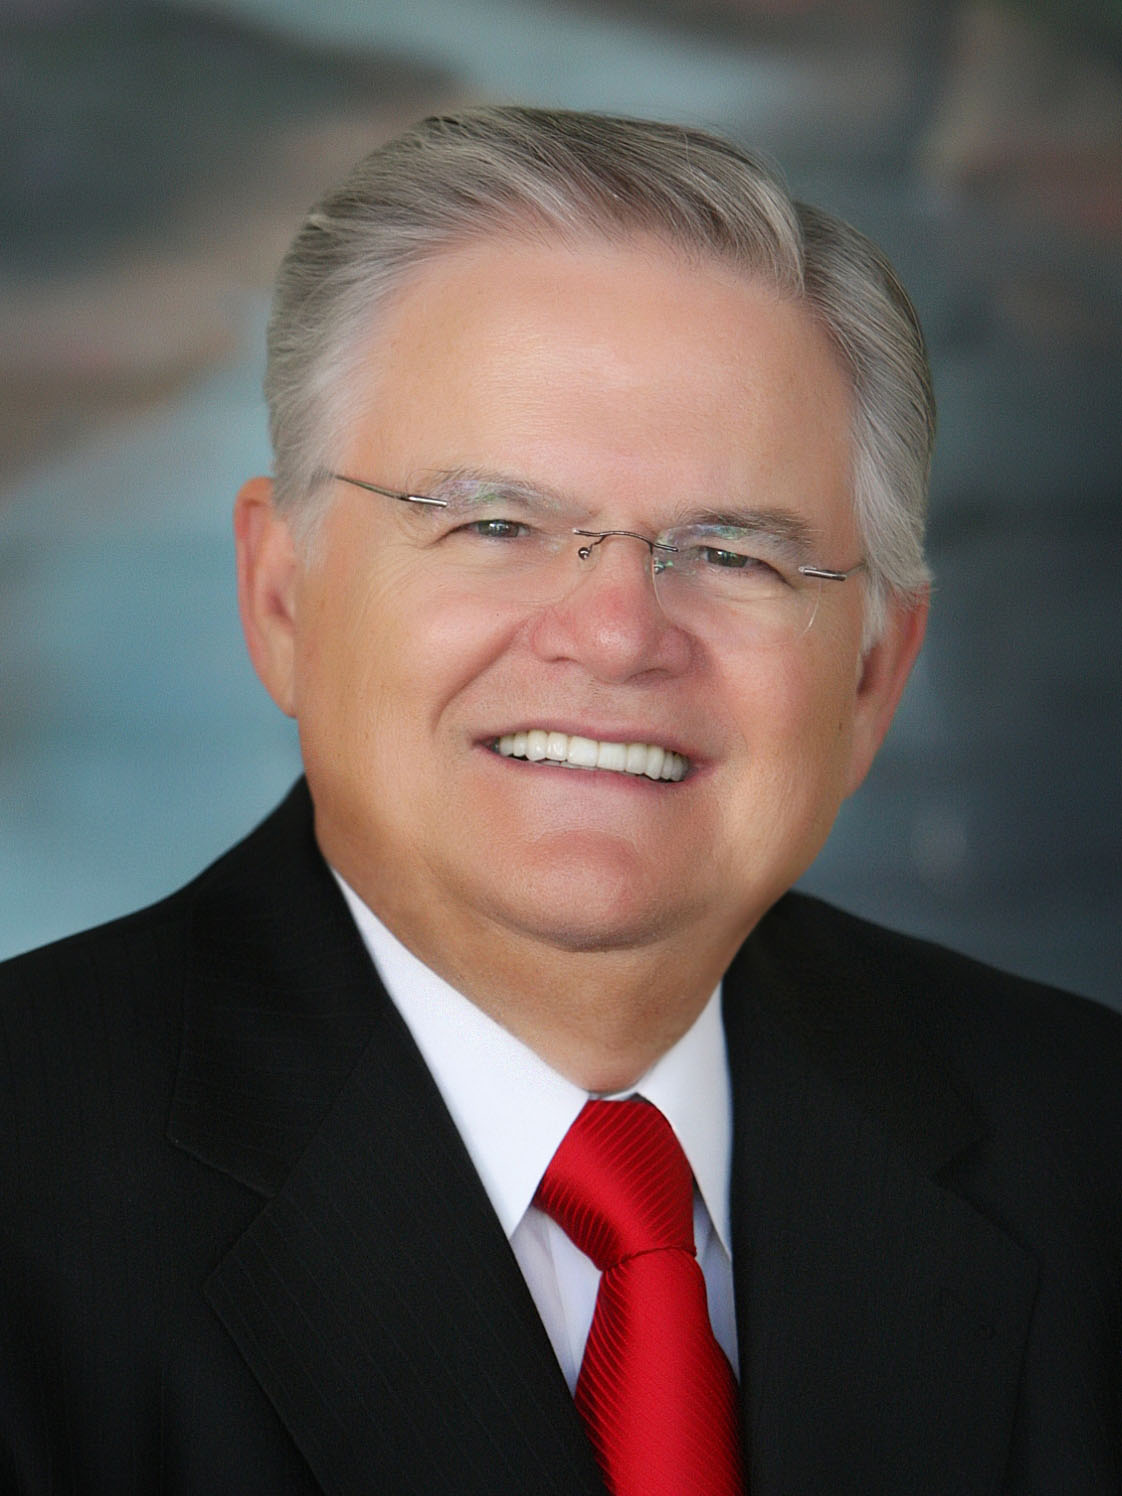 Pastor who blamed gays for Katrina no longer opposes LGBT protections